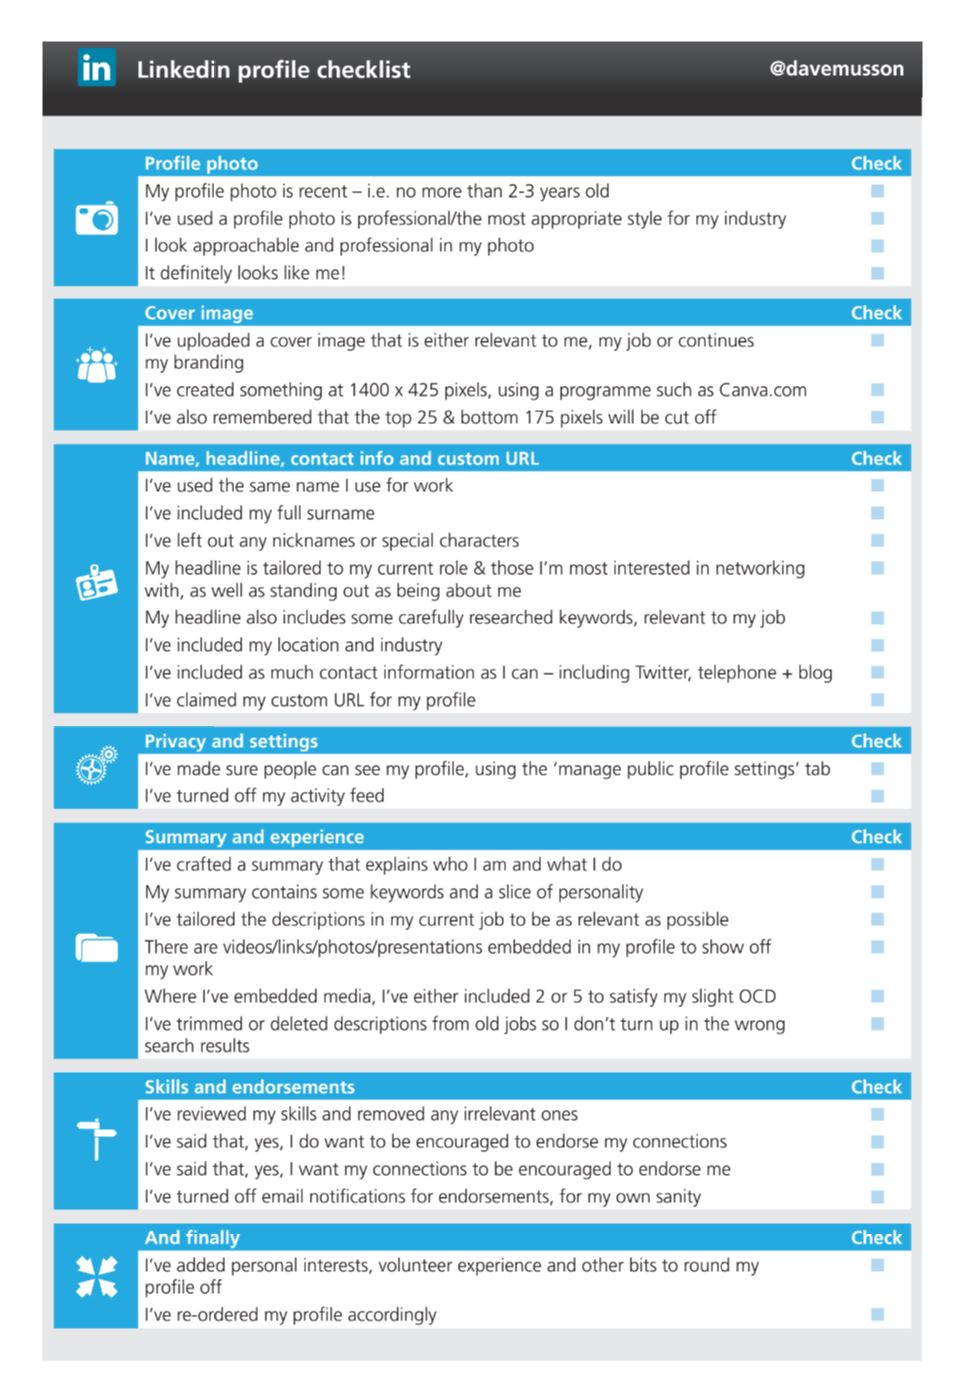 a snazzy checklist and six quick tips to turbo charge your post event i tweeted a quick screengrab of a very bland linkedin profile checklist that i d included in some of my training notes developed at warwick